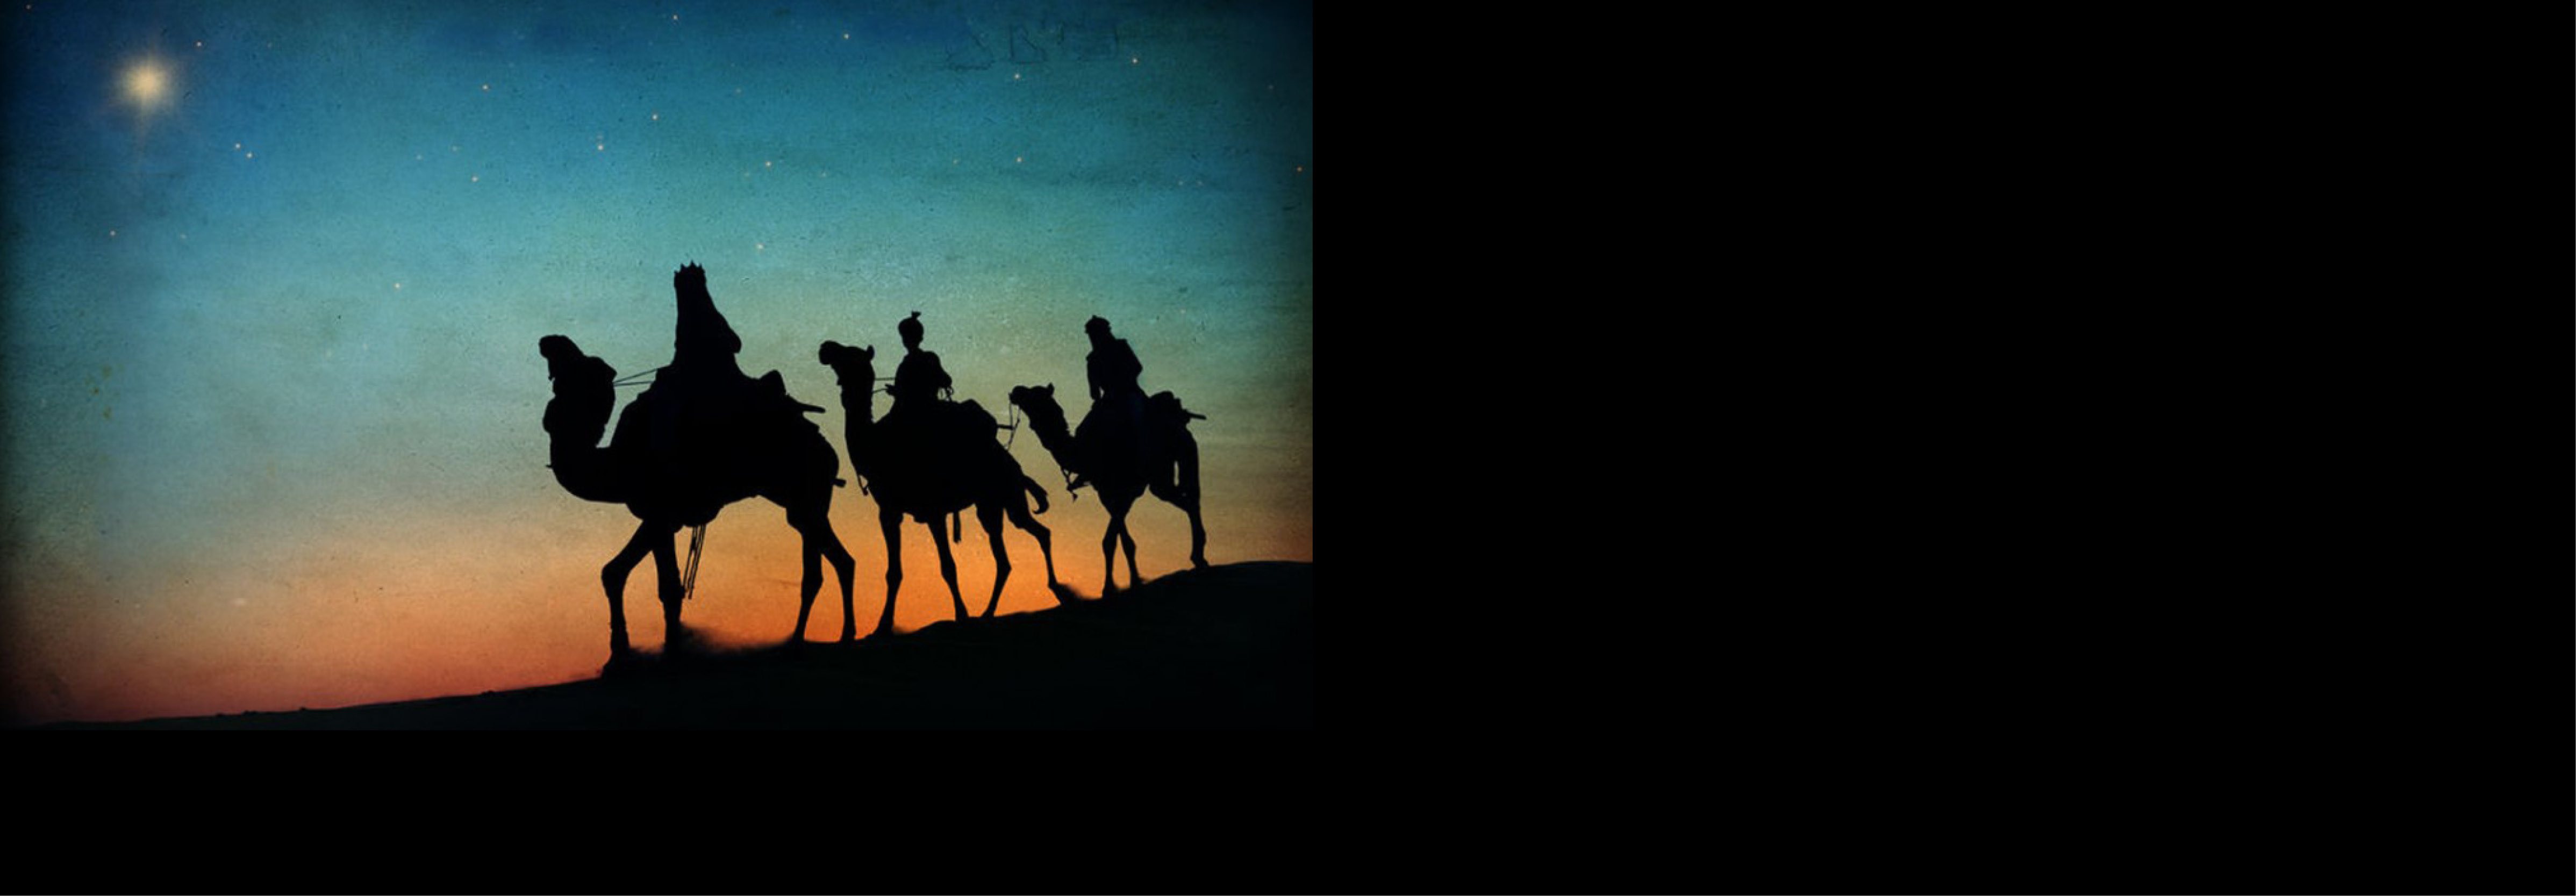 Dec. 7 - 9: Amahl and the Night Visitors